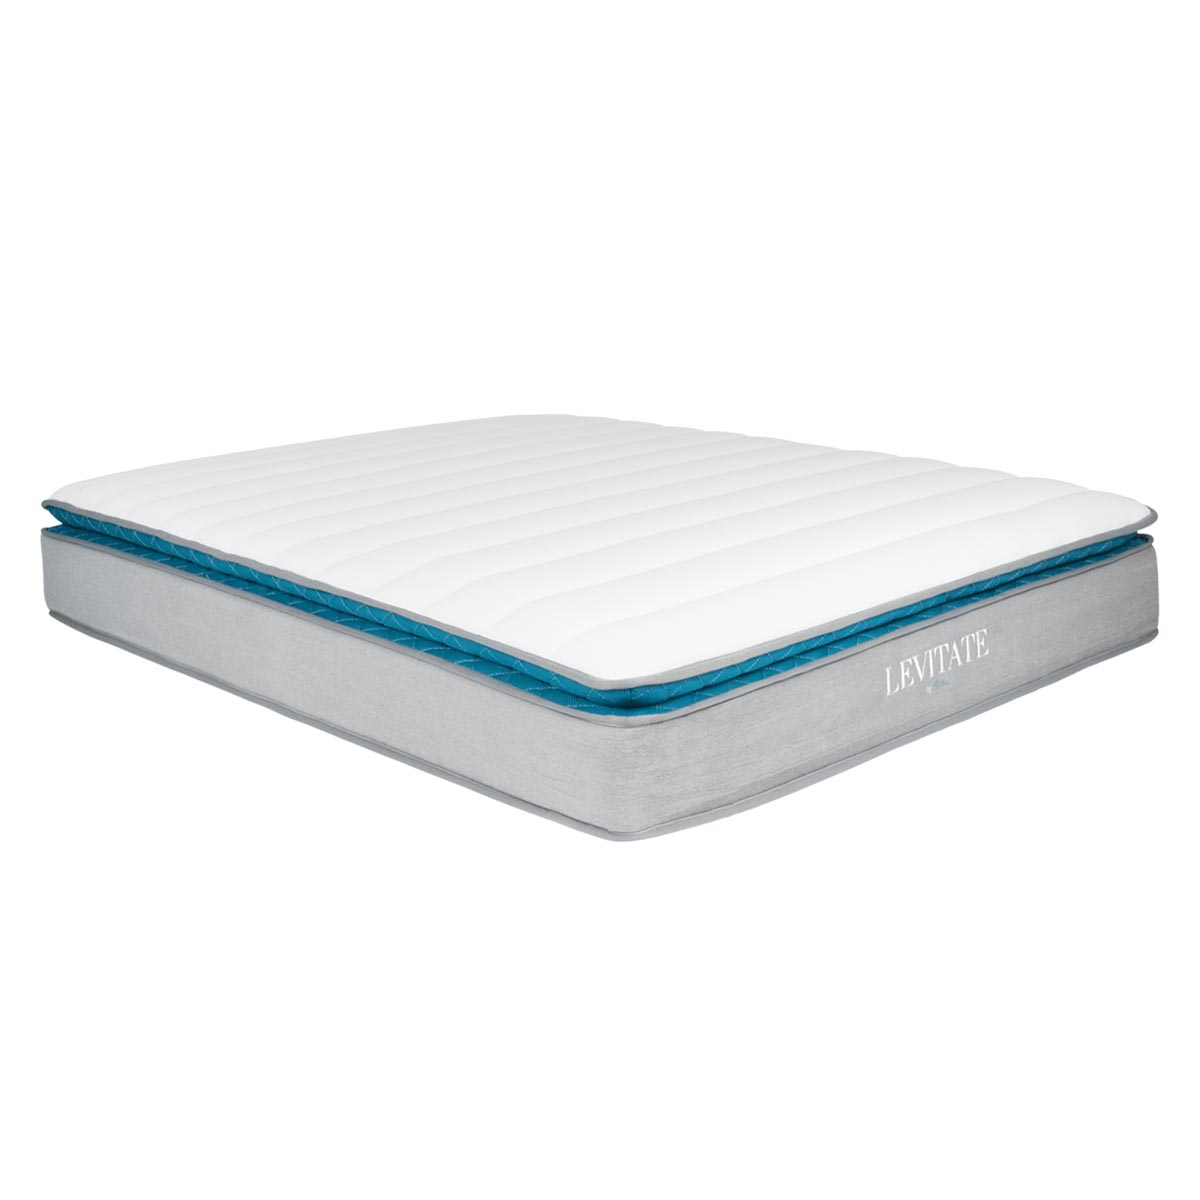 SquareRooms-Awards-Hipvan-Mattress